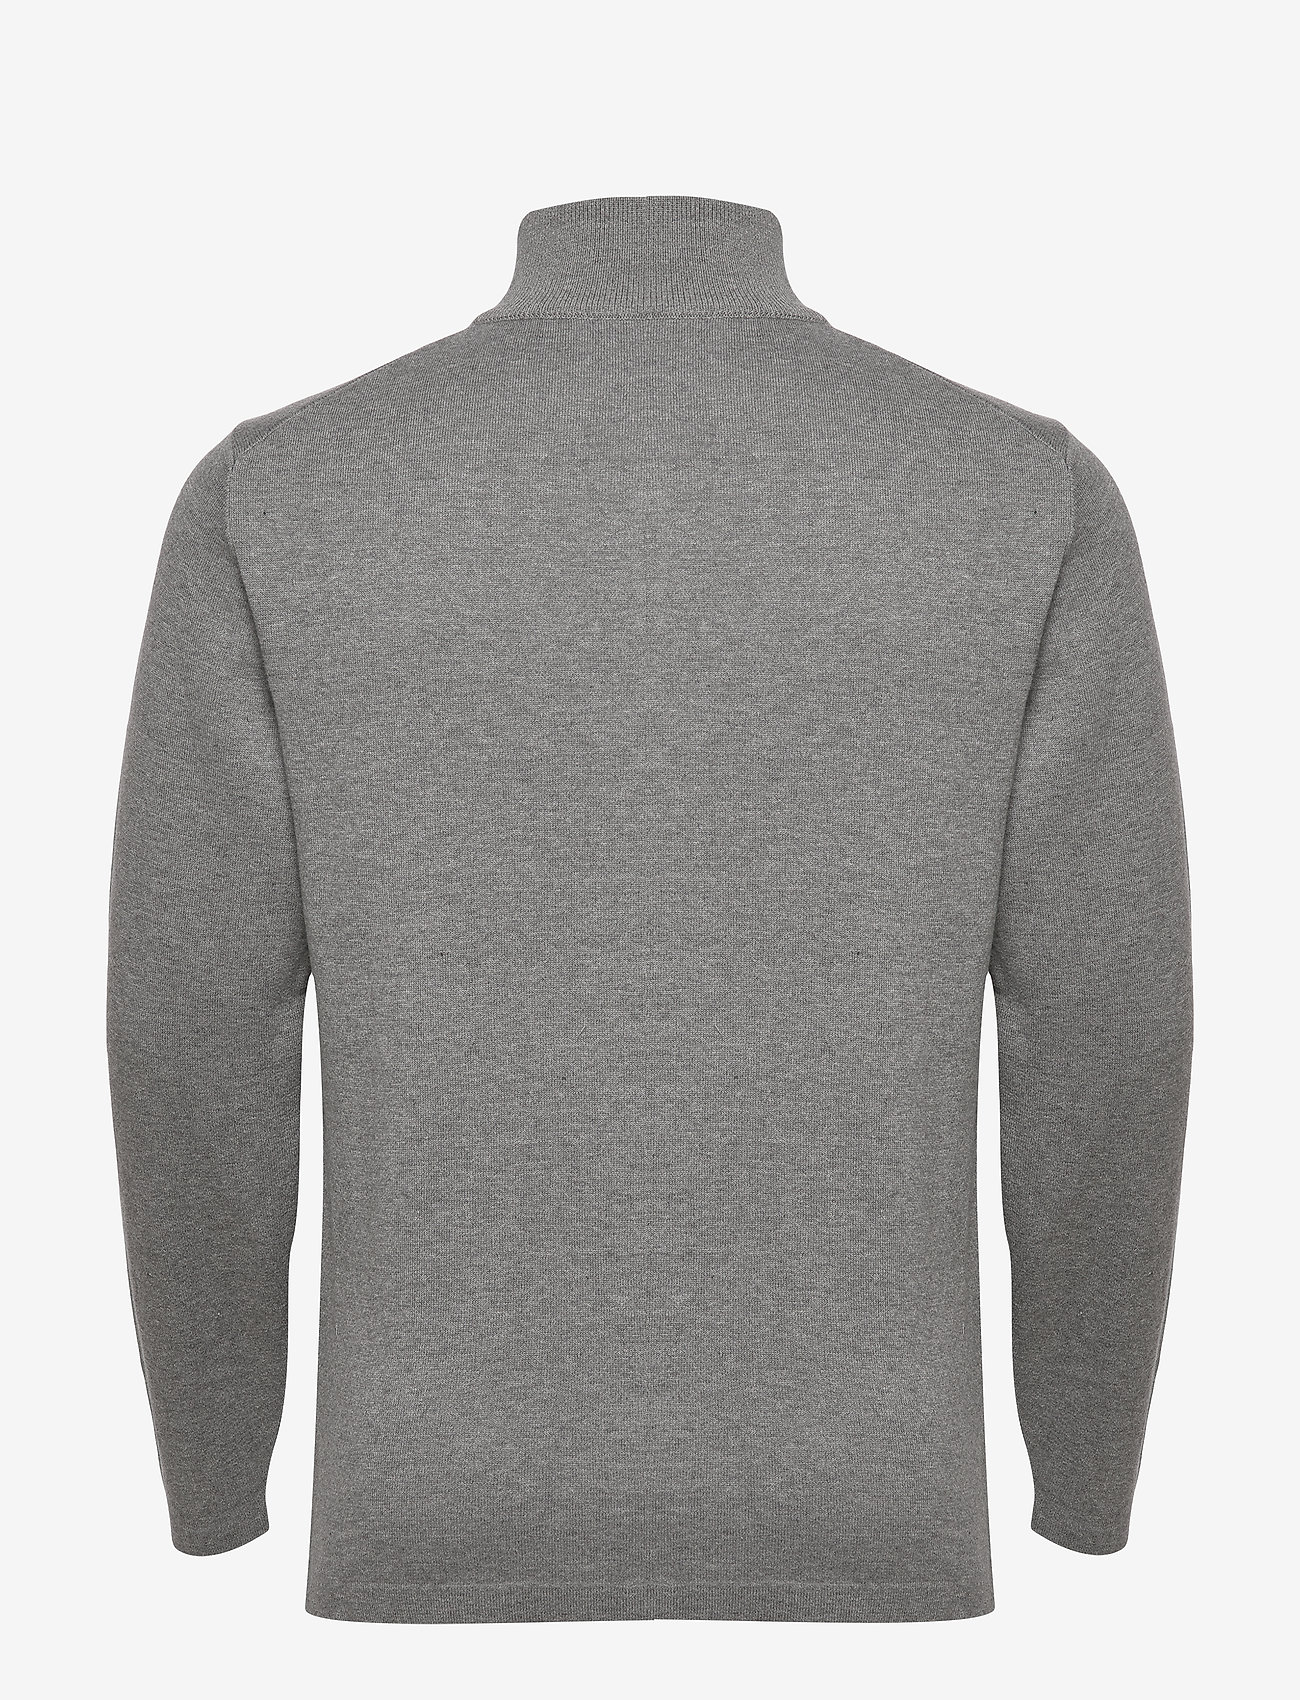 GANT D1. DOUBLE FACED FULL ZIP CARDIGAN - Strikkevarer GREY MELANGE - Menn Klær